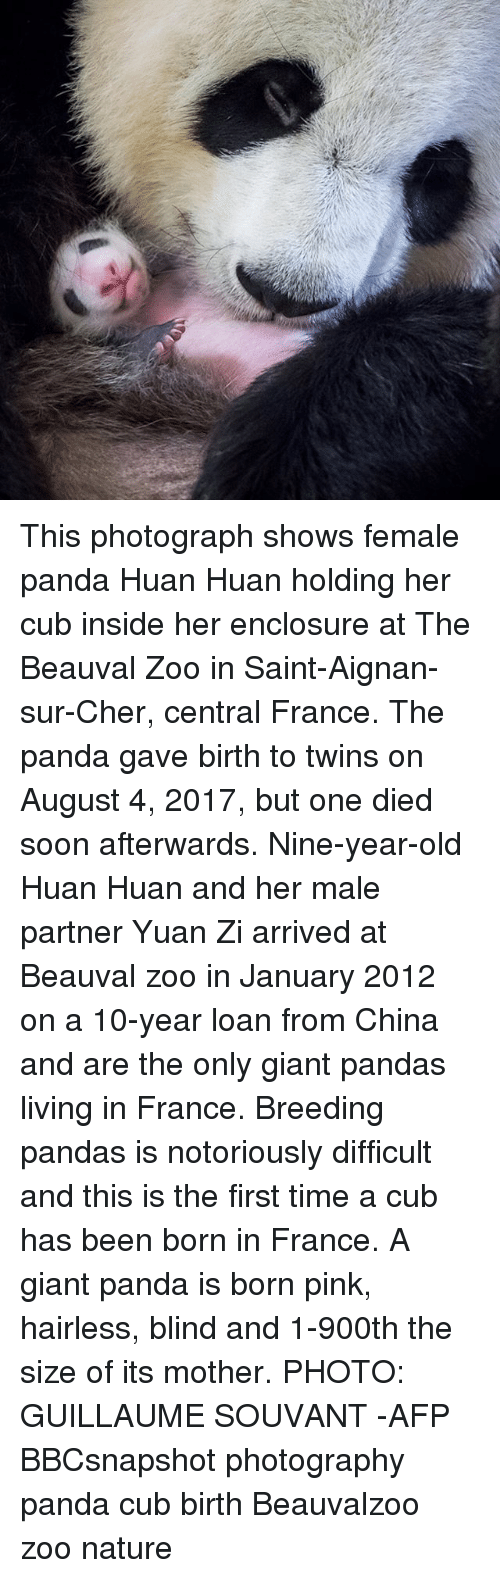 Blindes: This photograph shows female panda Huan Huan holding her cub inside her enclosure at The Beauval Zoo in Saint-Aignan-sur-Cher, central France. The panda gave birth to twins on August 4, 2017, but one died soon afterwards. Nine-year-old Huan Huan and her male partner Yuan Zi arrived at Beauval zoo in January 2012 on a 10-year loan from China and are the only giant pandas living in France. Breeding pandas is notoriously difficult and this is the first time a cub has been born in France. A giant panda is born pink, hairless, blind and 1-900th the size of its mother. PHOTO: GUILLAUME SOUVANT -AFP BBCsnapshot photography panda cub birth Beauvalzoo zoo nature